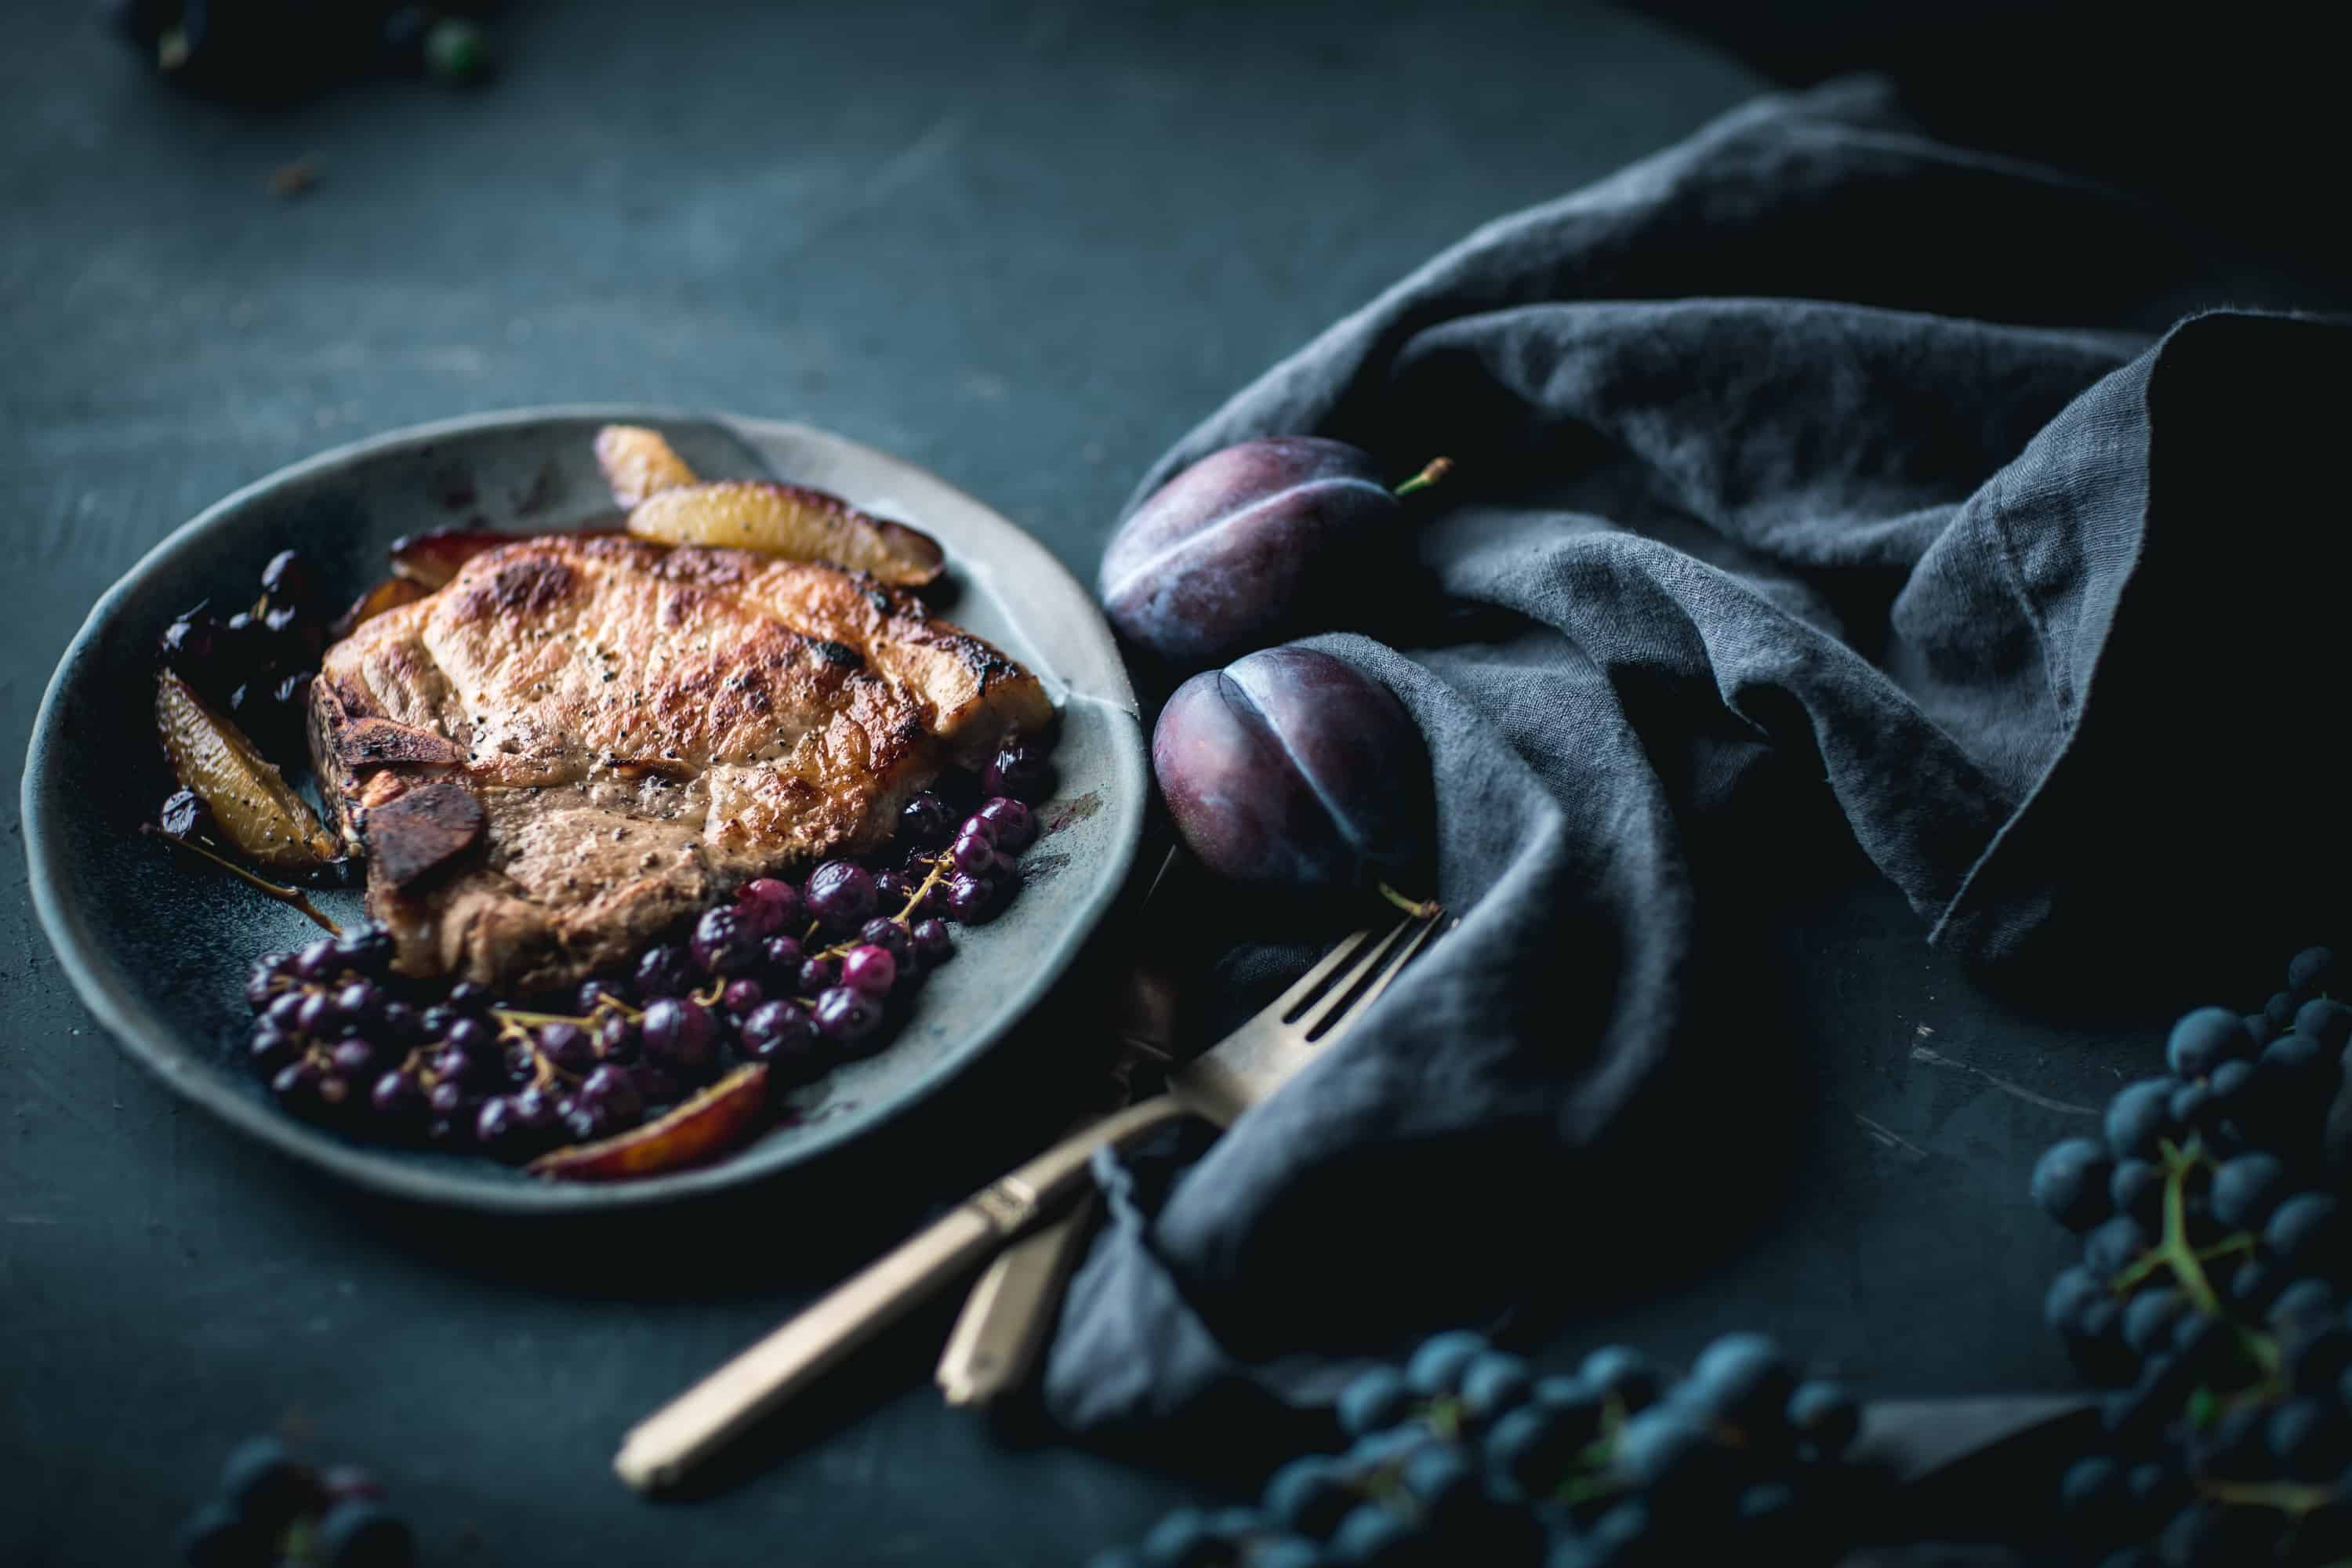 Perfect Brined Bone In Pork Chops with Roasted Grapes and Plums by Eva Kosmas F